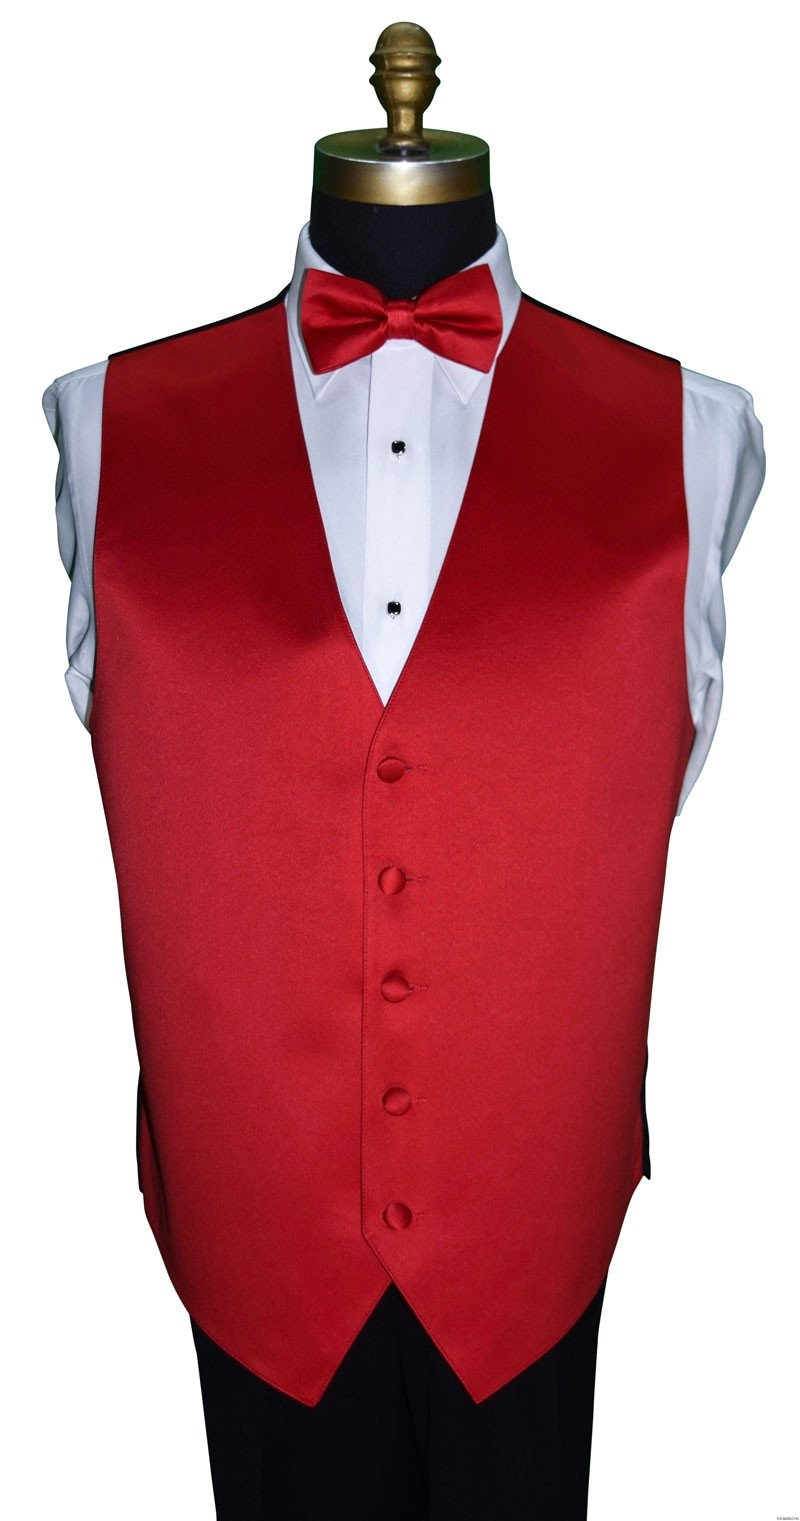 red satin vest and bowtie for men